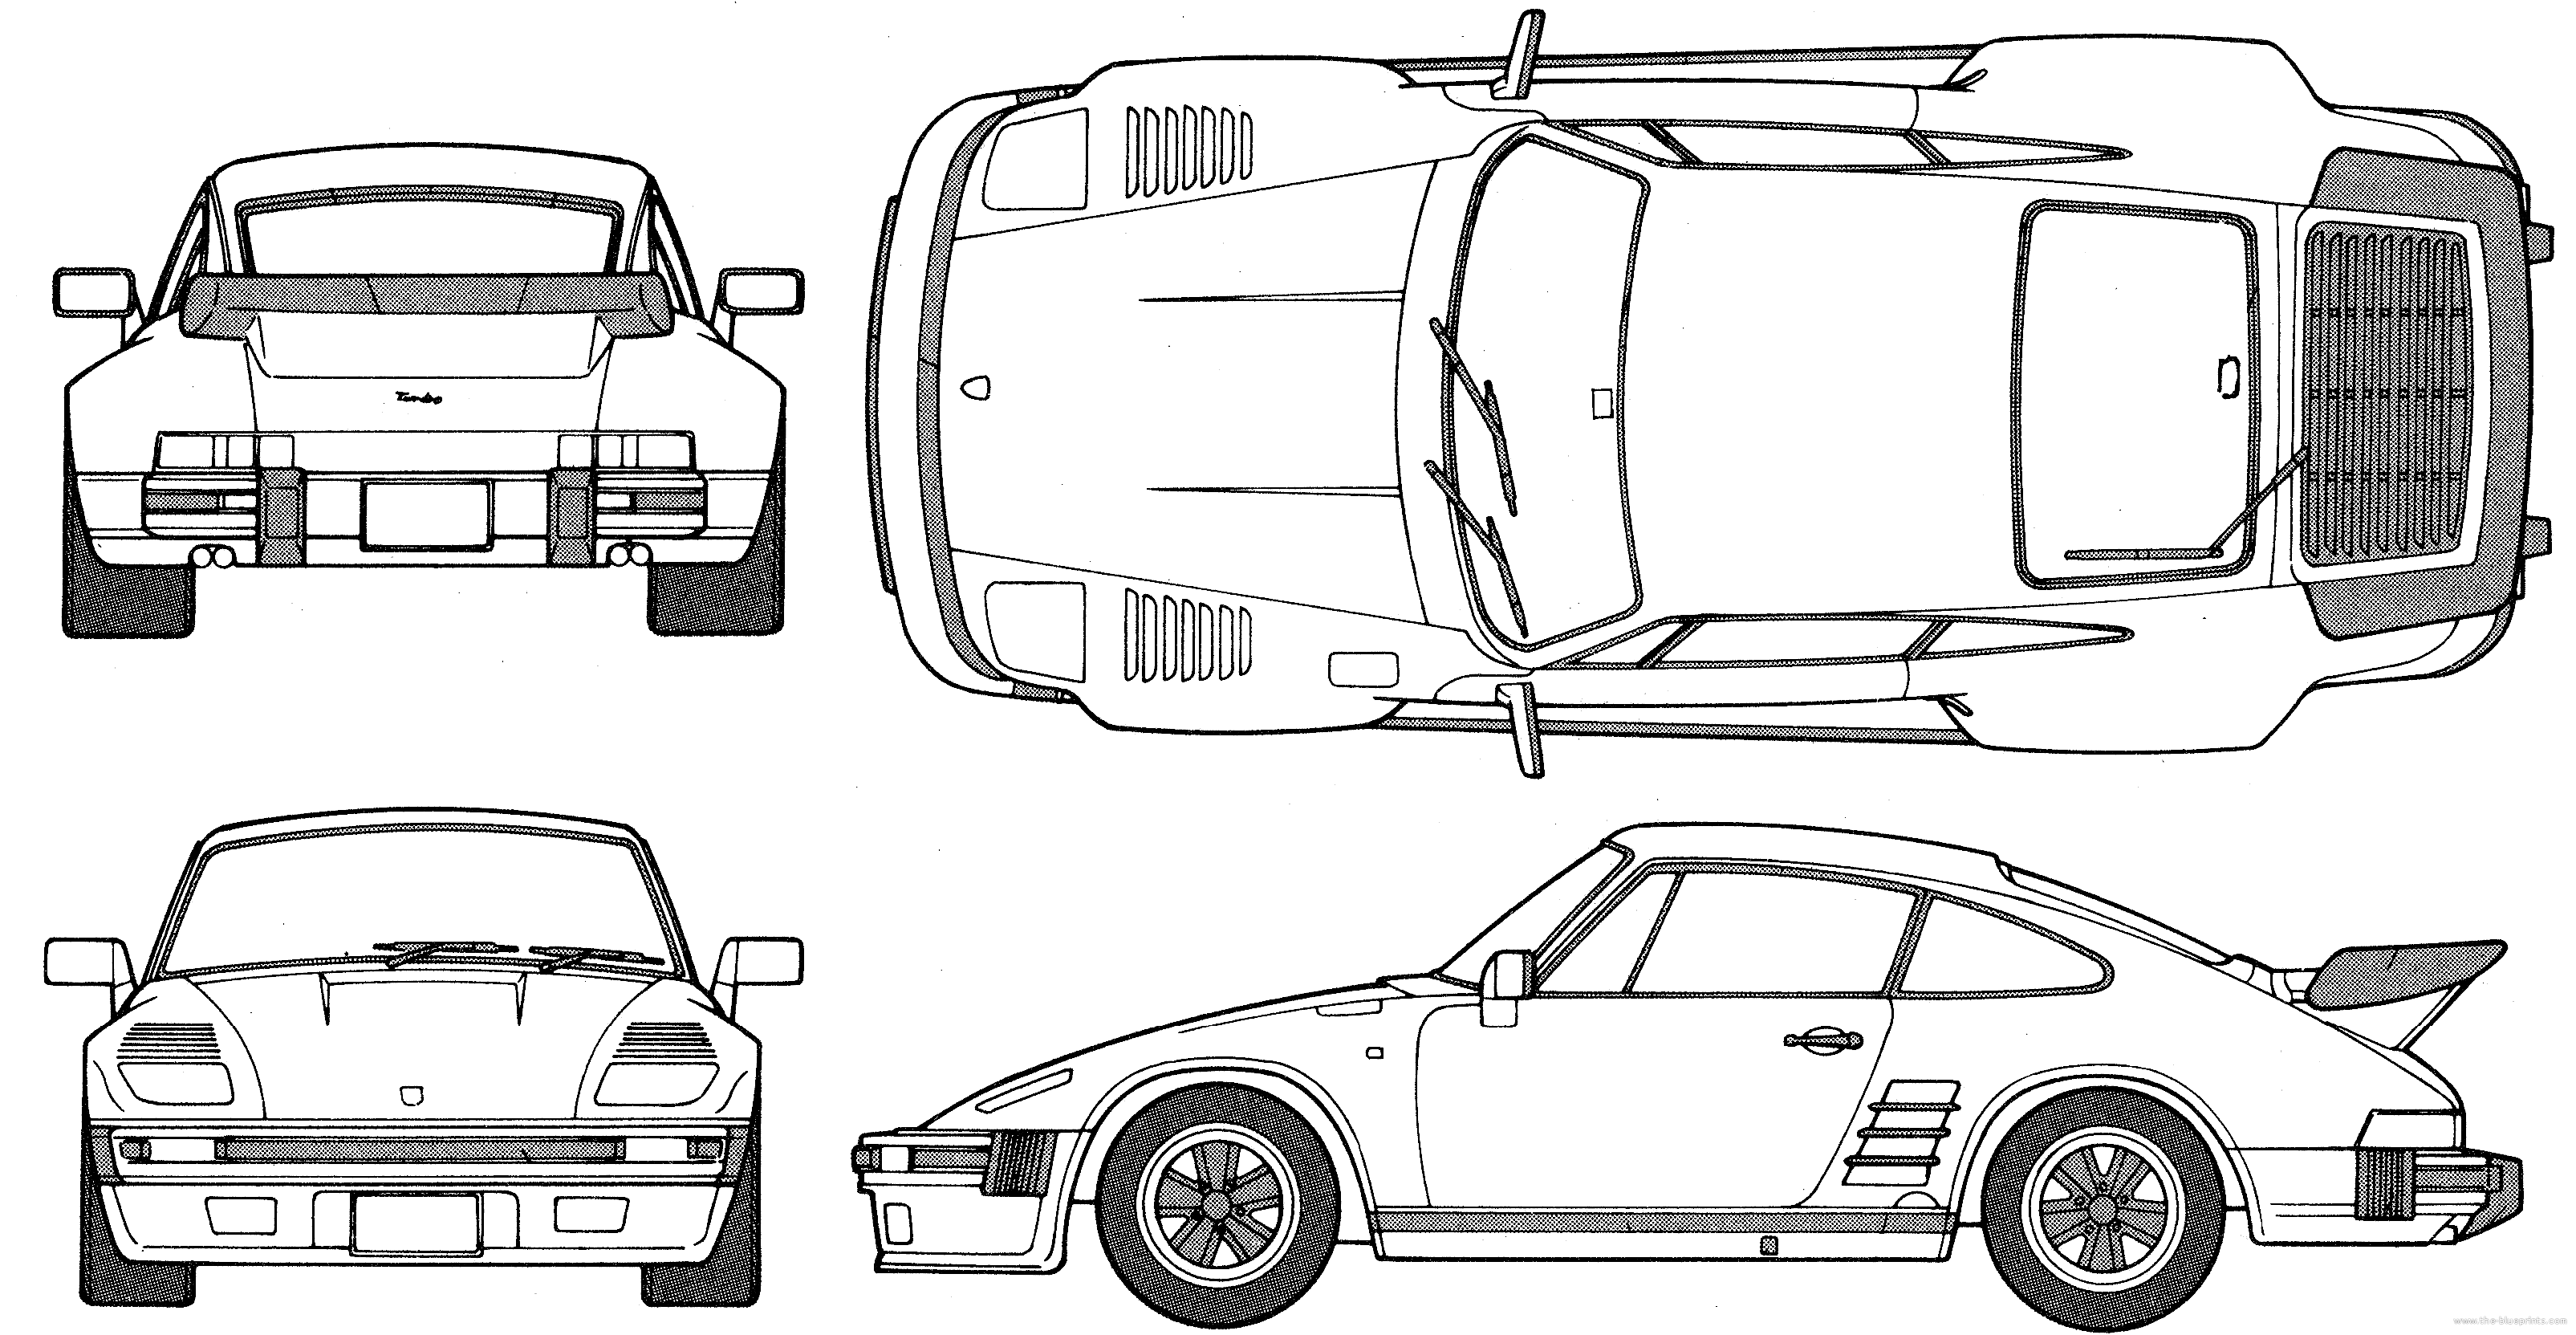 Porsche 911 flatnose coupe blueprints free outlines porsche 911 flatnose blueprints malvernweather Gallery